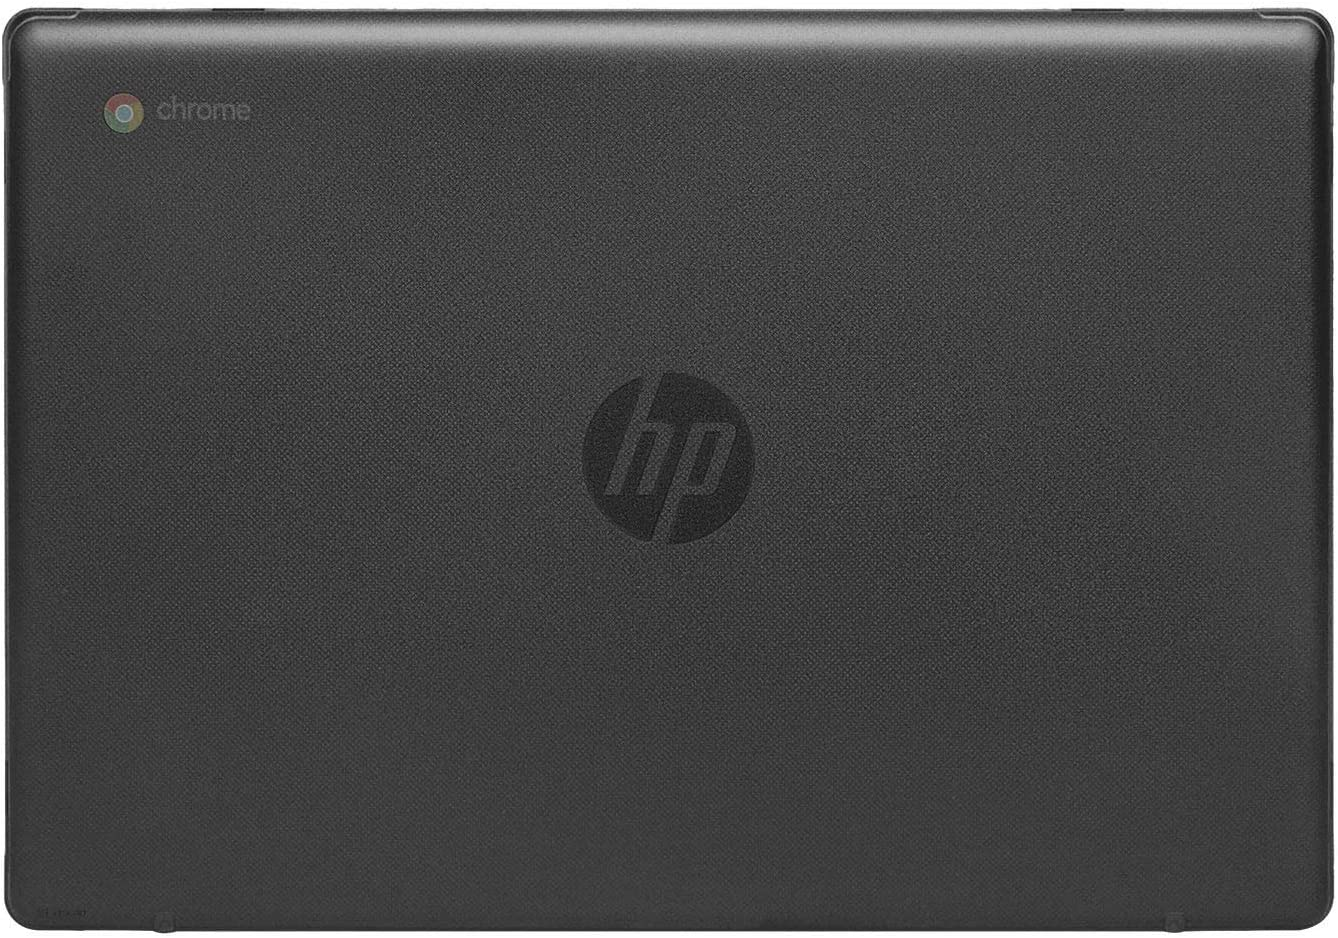 "mCover Hard Shell Case for 2020 14"" HP Chromebook 14a Series (Like 14a-na0023cl Sold at Costco, NOT Compatible with Older HP C14 G1 / G2 / G3 / G4/ G5 / G6 Series) laptops (Black)"